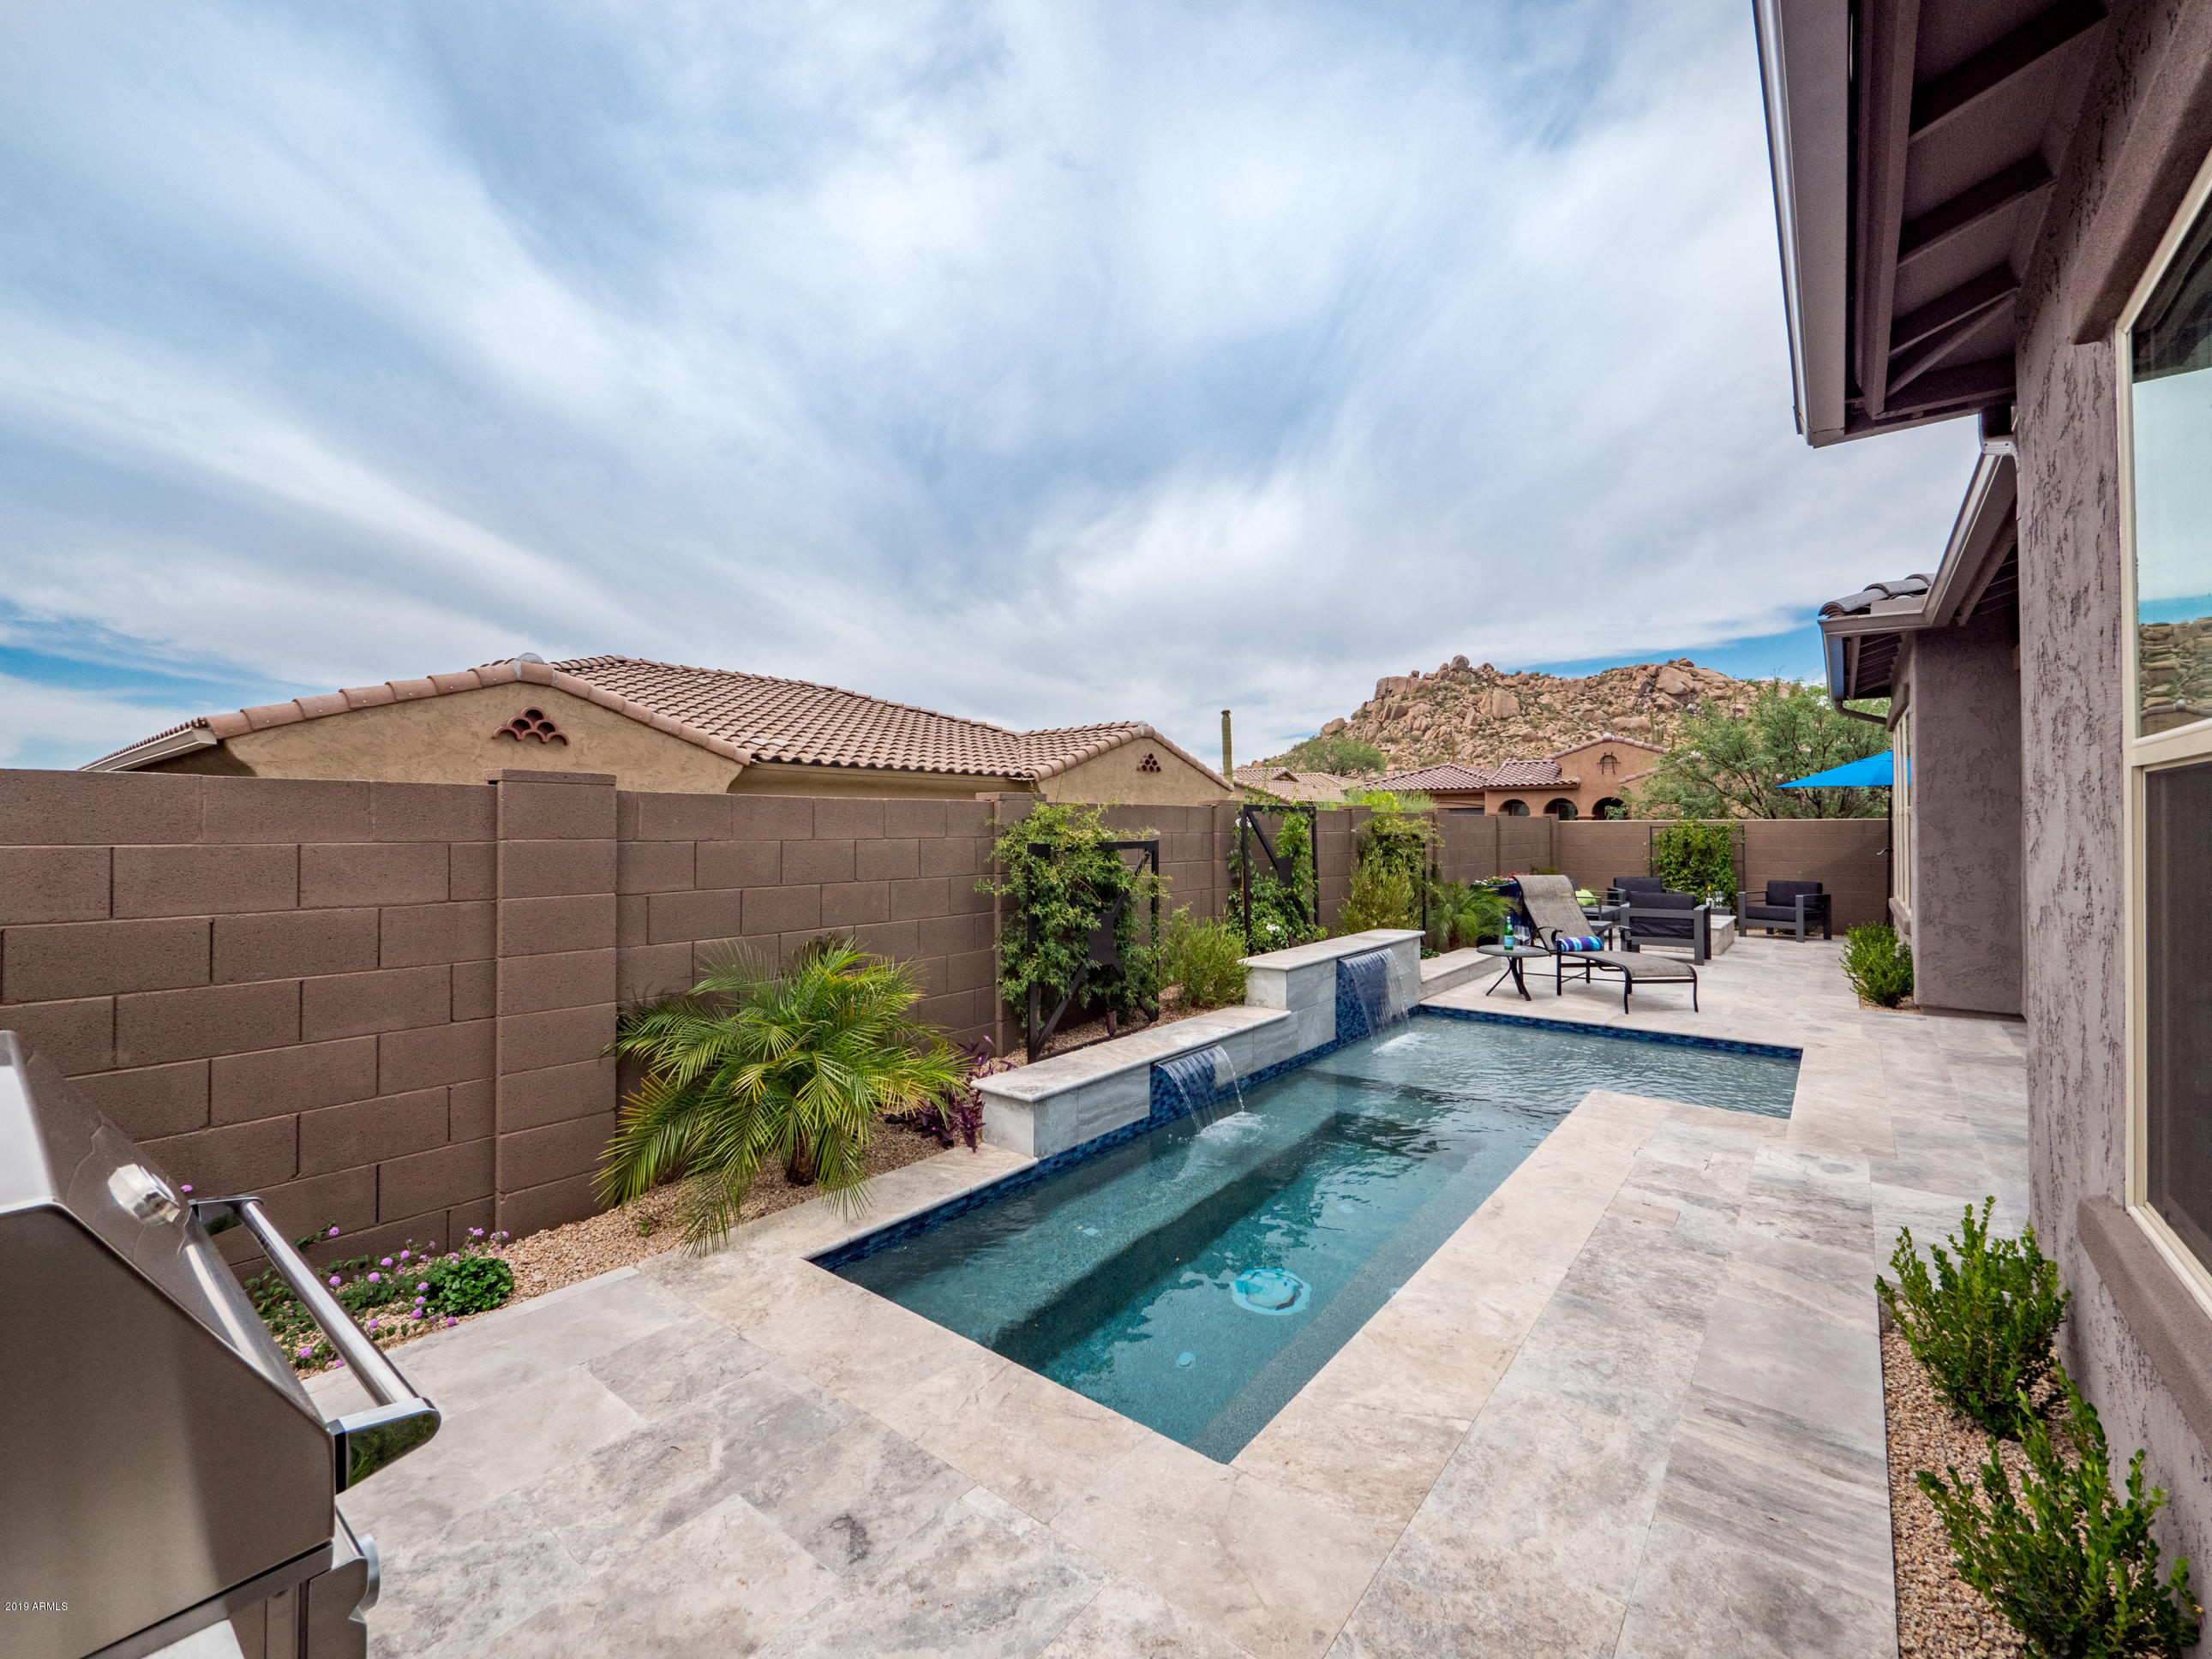 This Back Yard is your own Private Resor